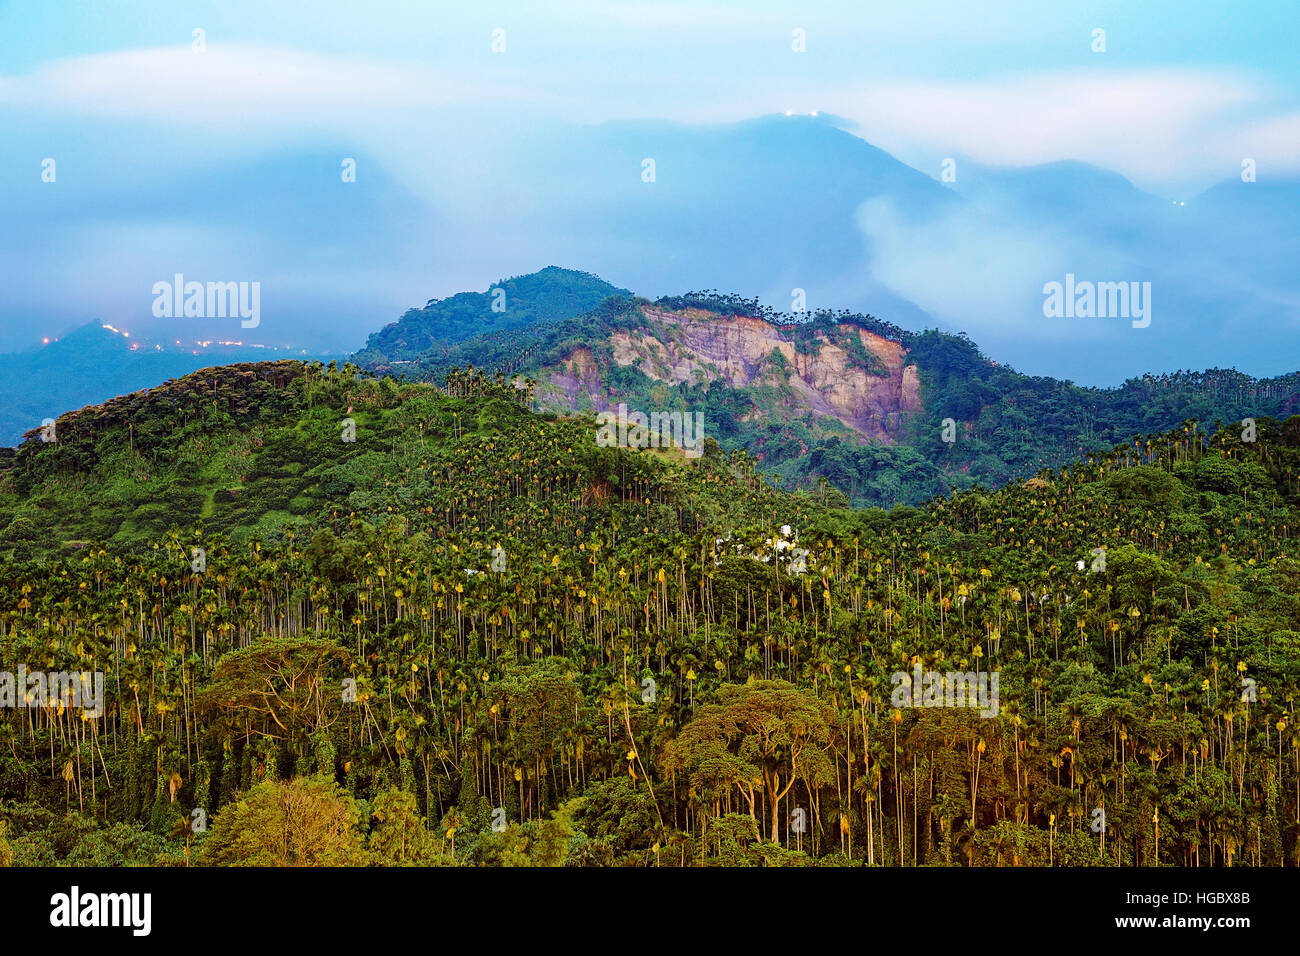 Betel nut trees on a mountain at night time - Stock Image